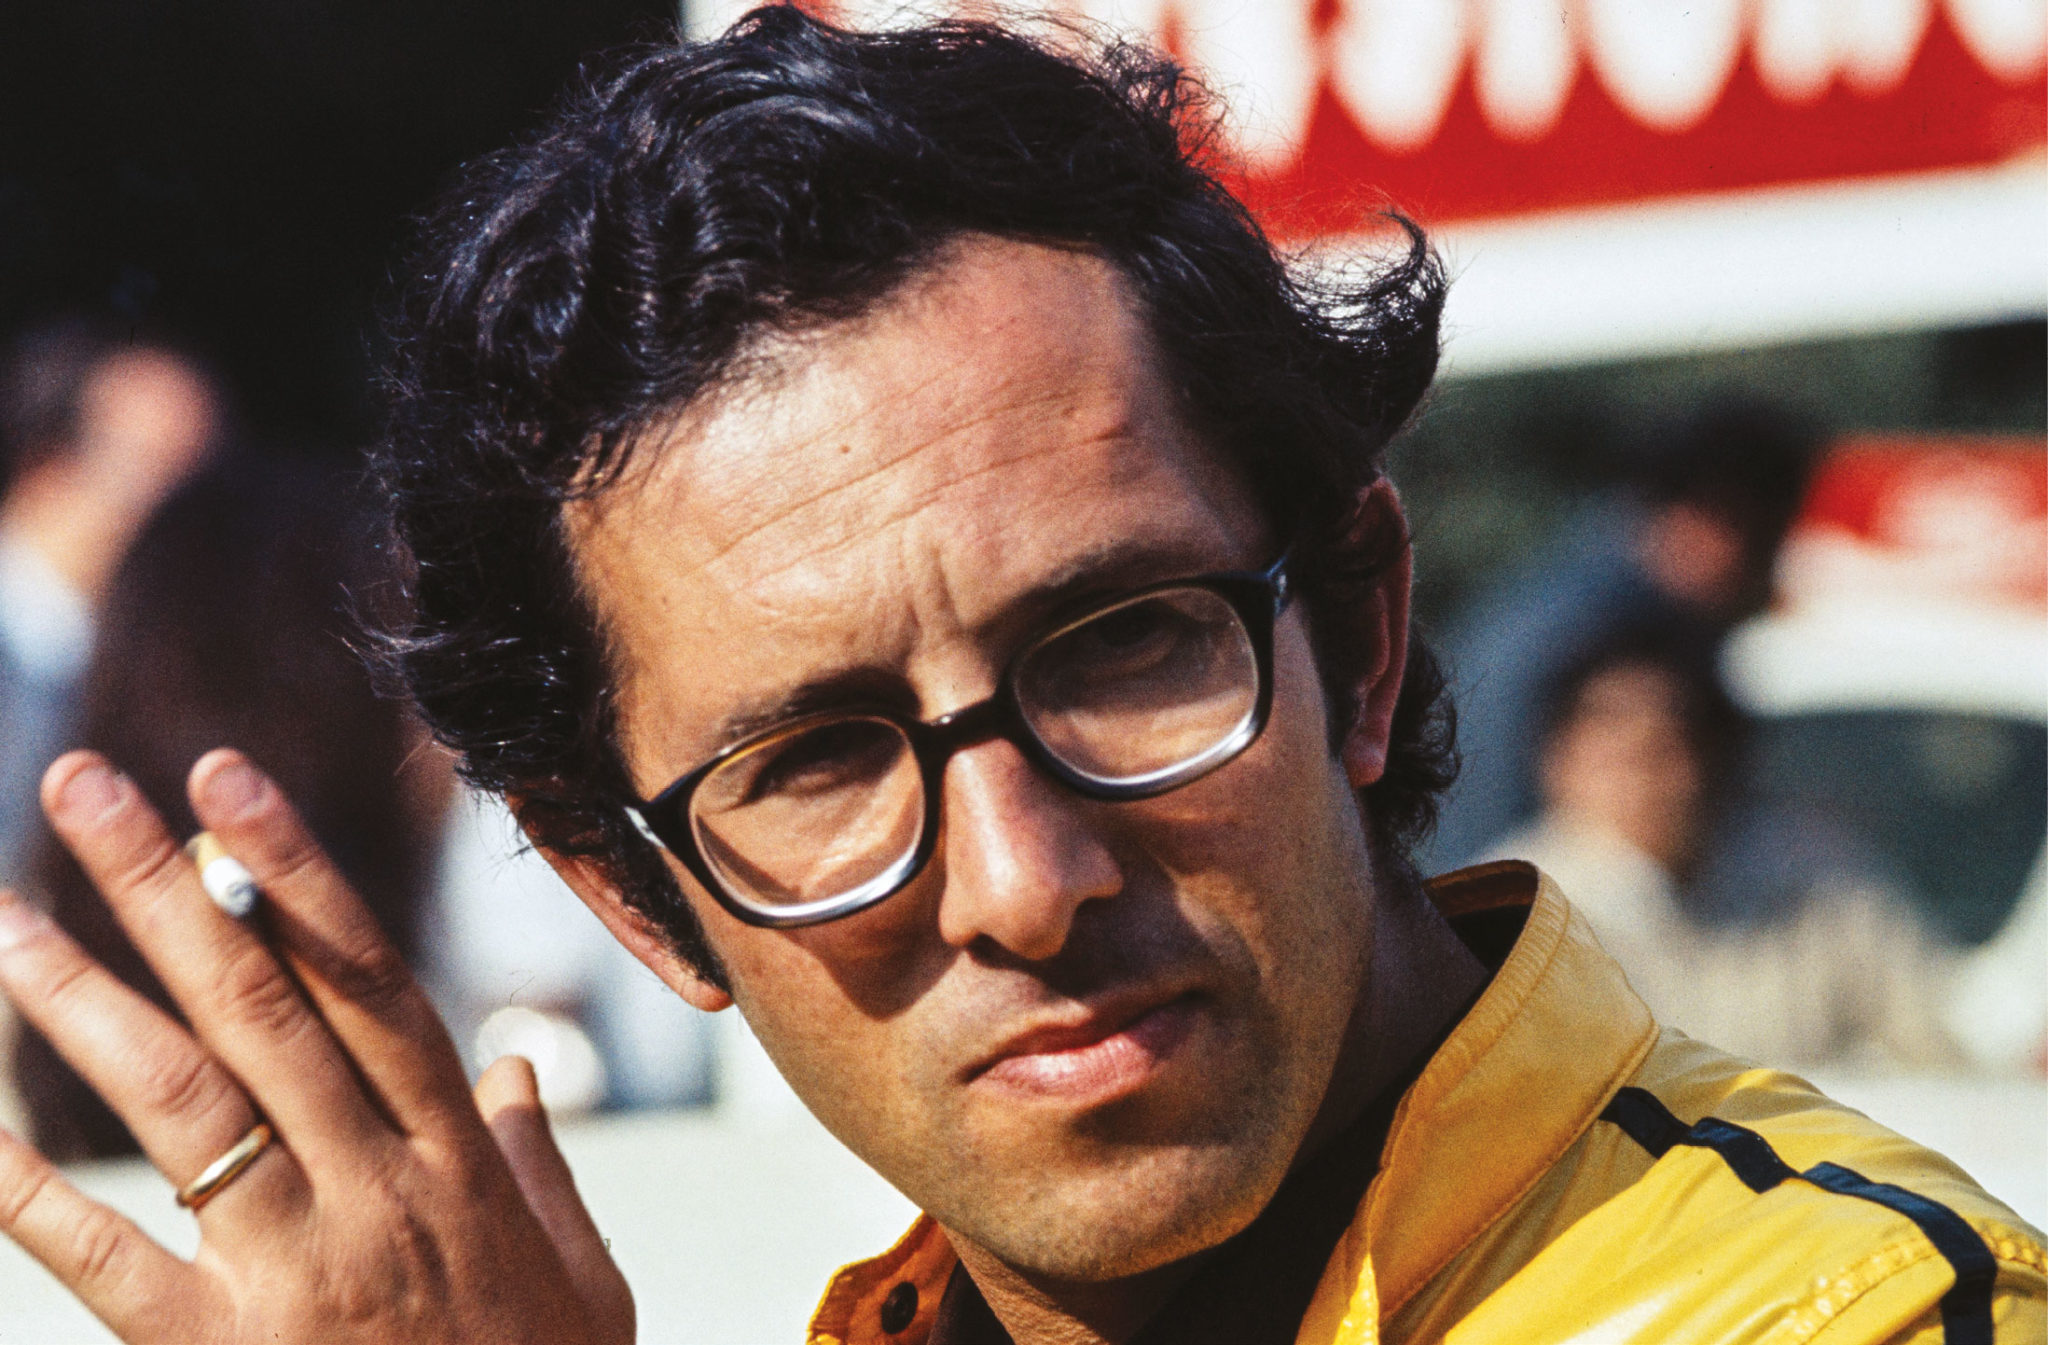 By 1971 Forghieri had spent a decade as Ferrari's chief engineer